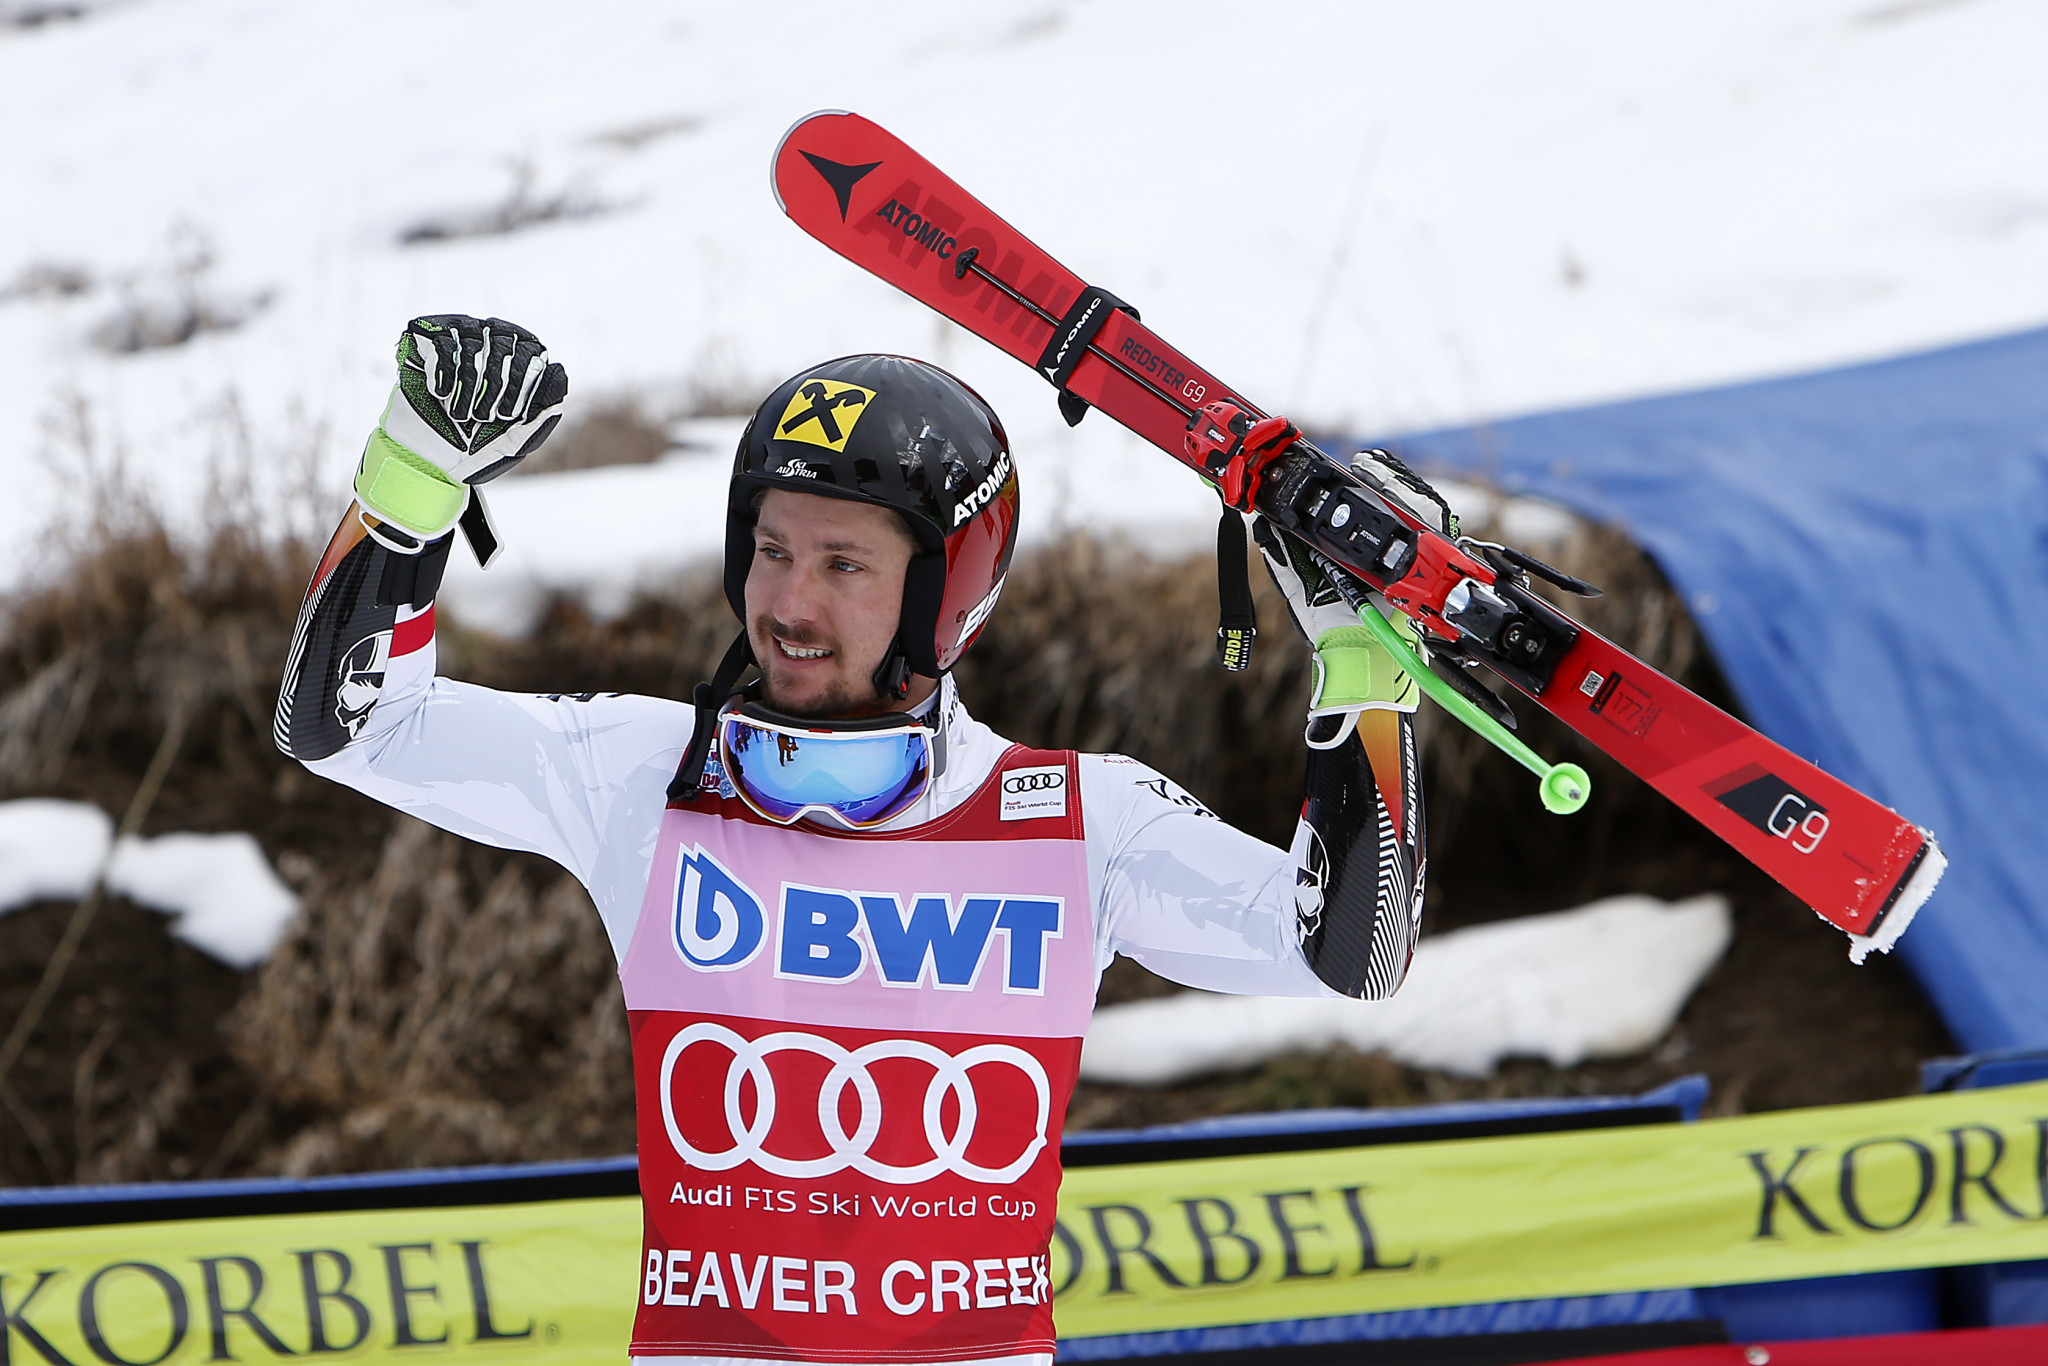 Hirscher wins men's giant slalom at FIS Alpine Skiing World Cup in Beaver Creek